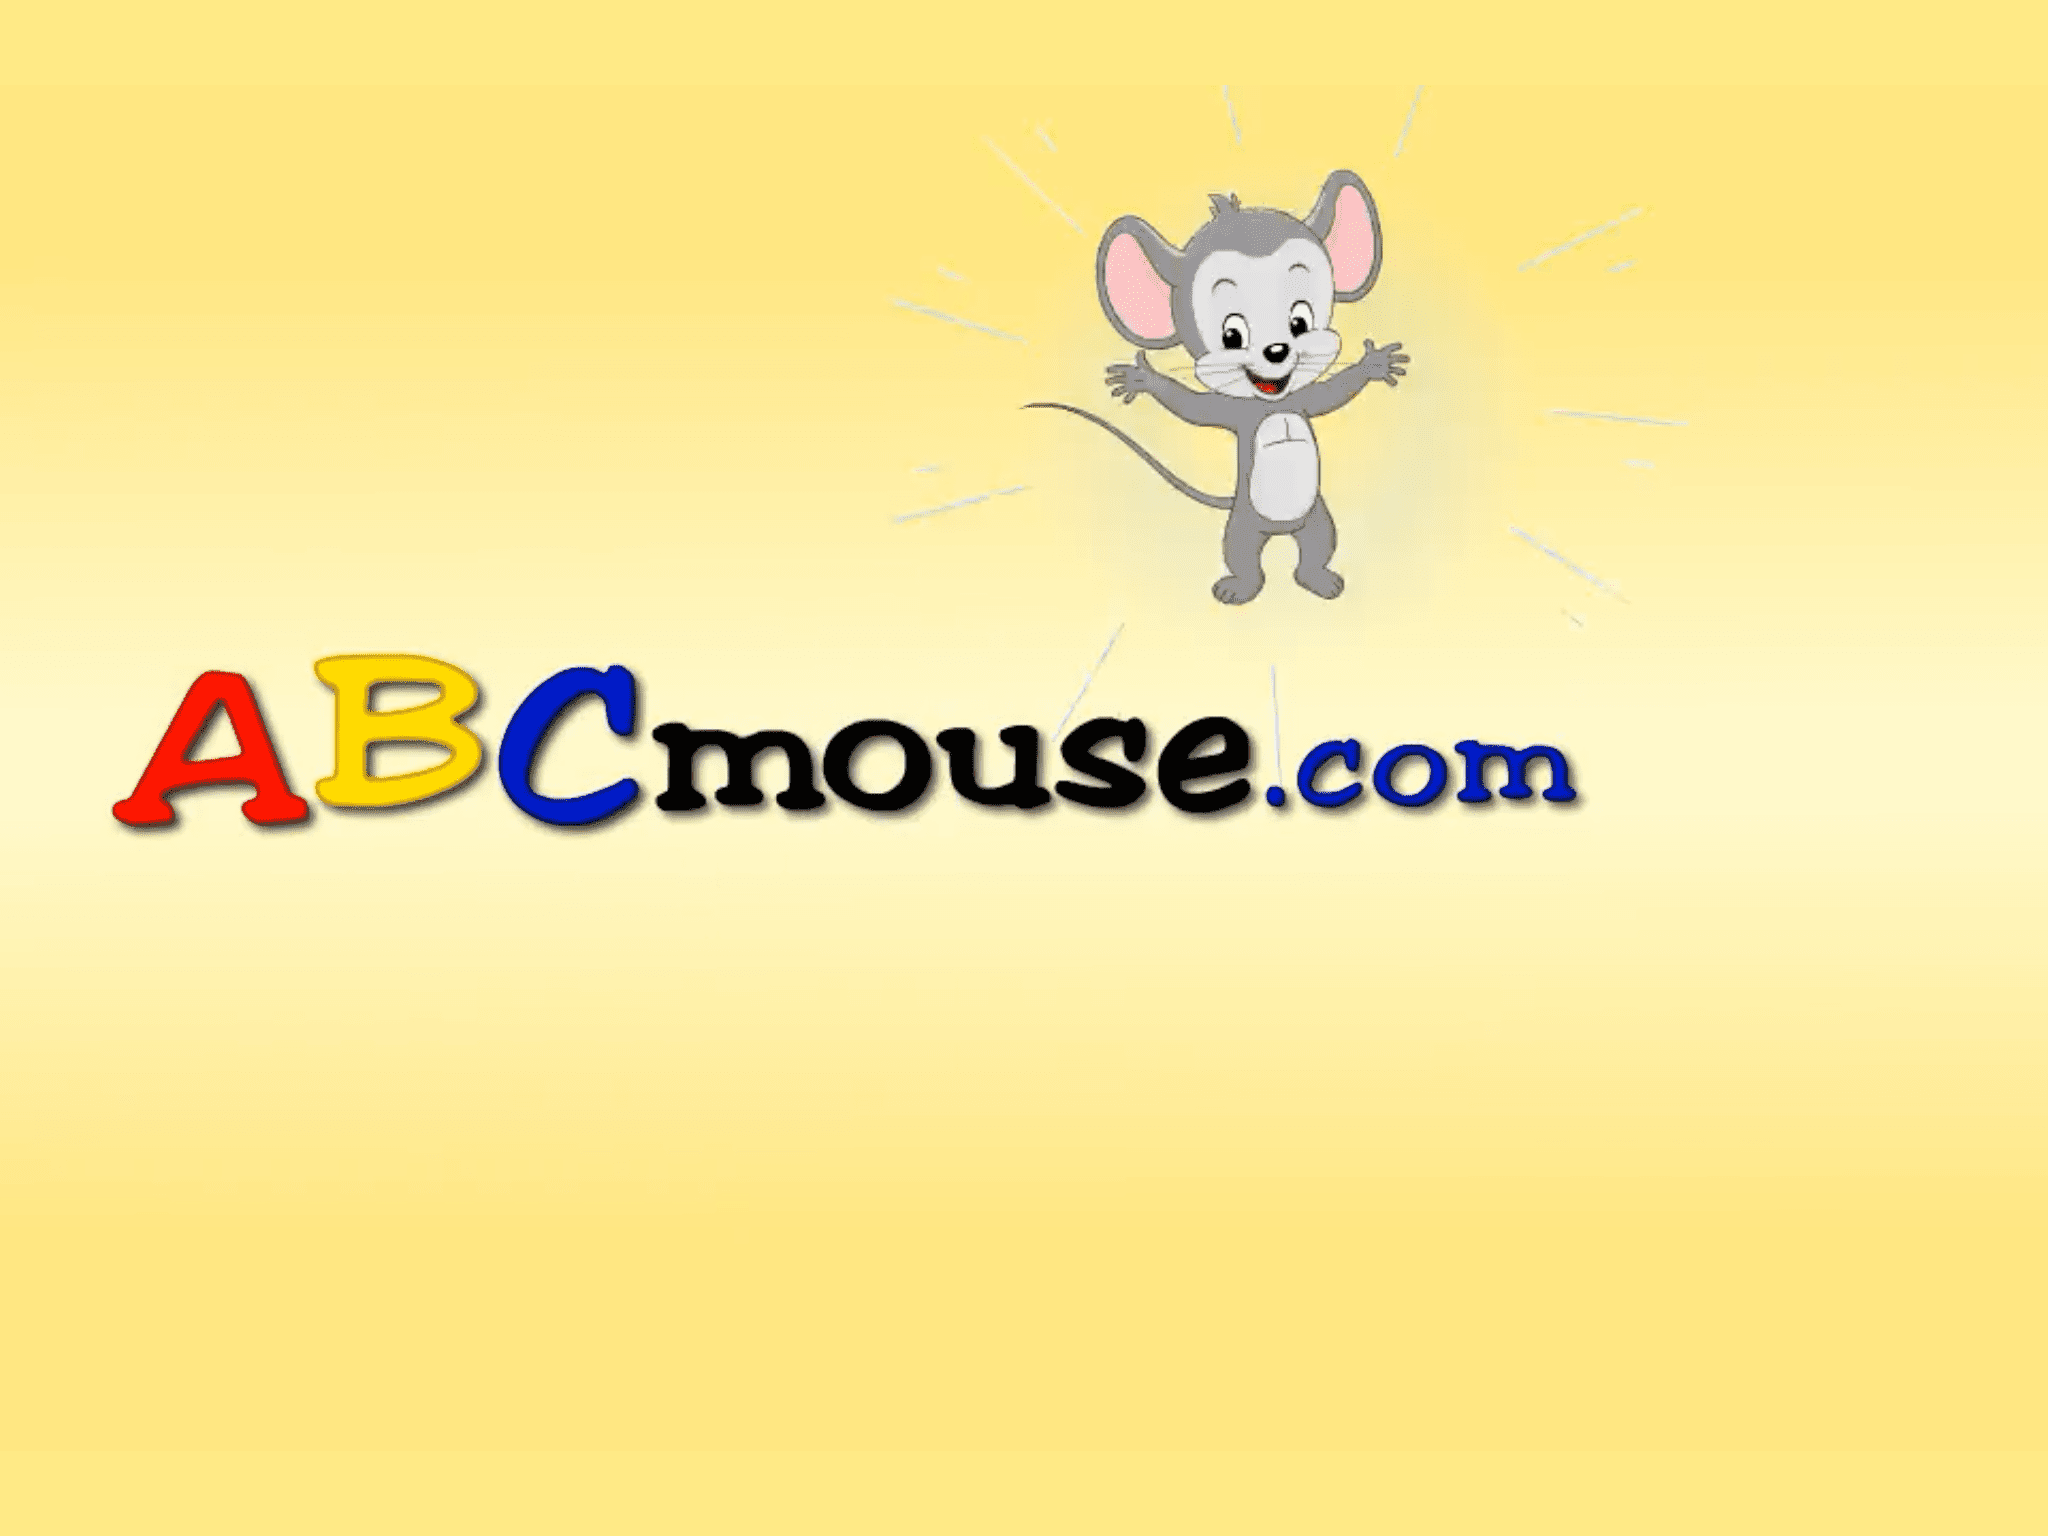 Illustrated mouse next to abcmouse.com